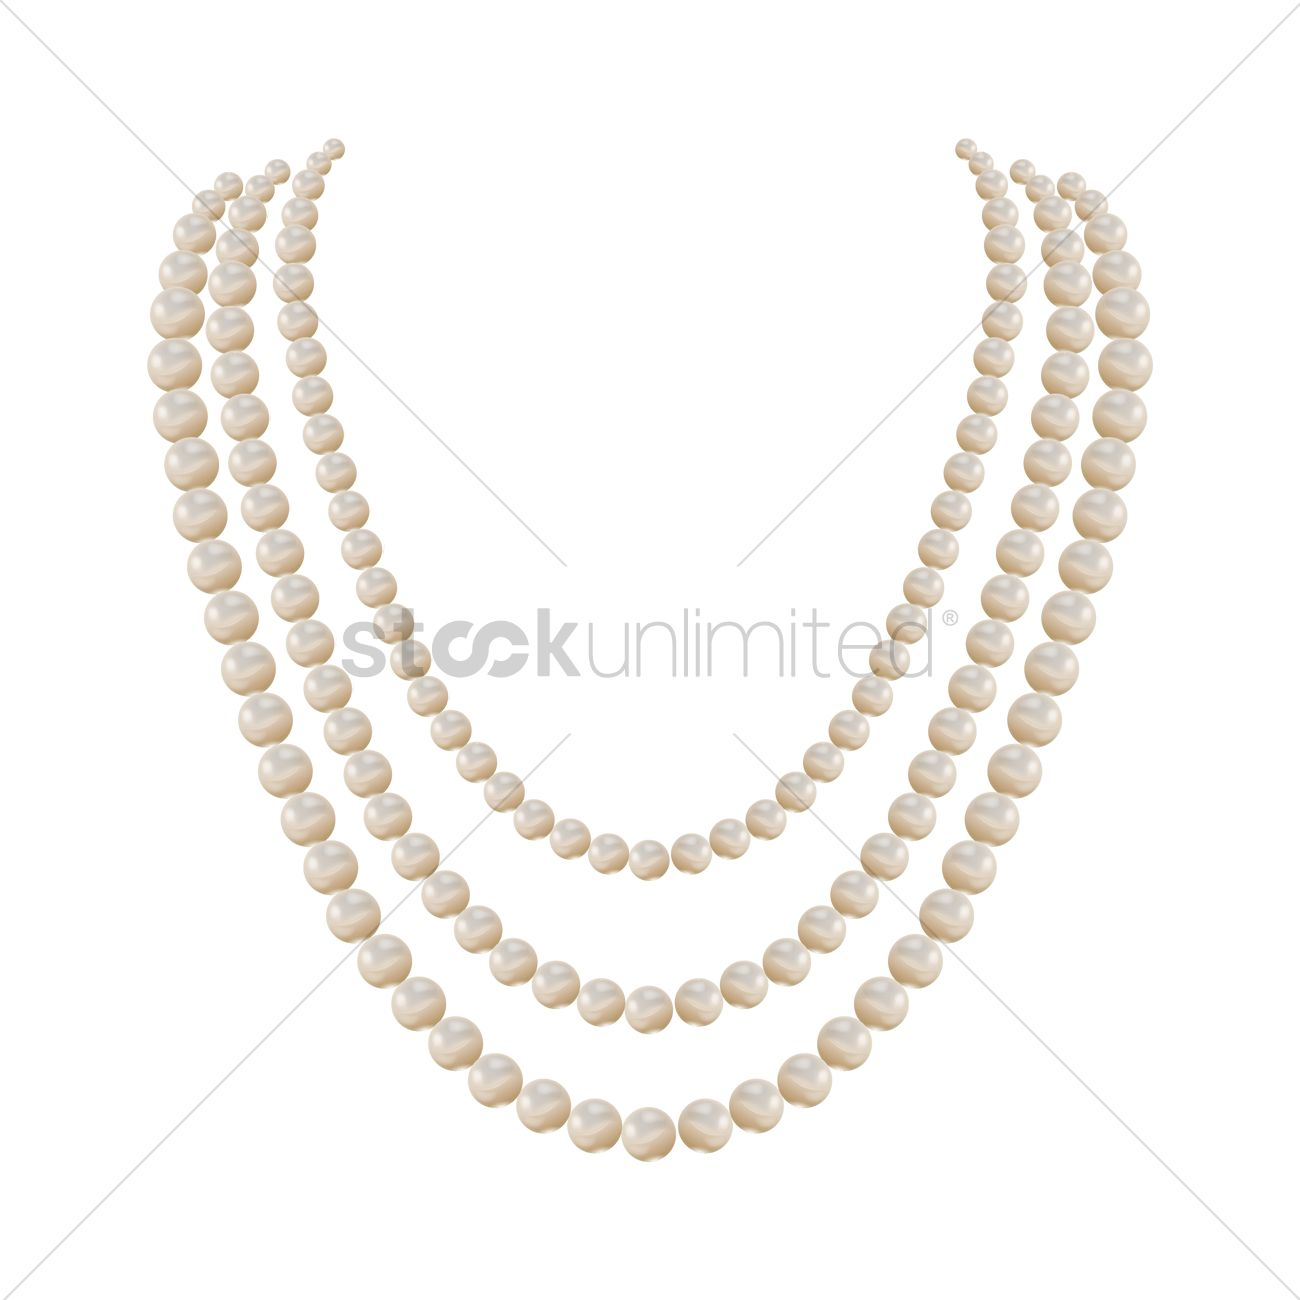 Pearl Necklace Vector Graphic